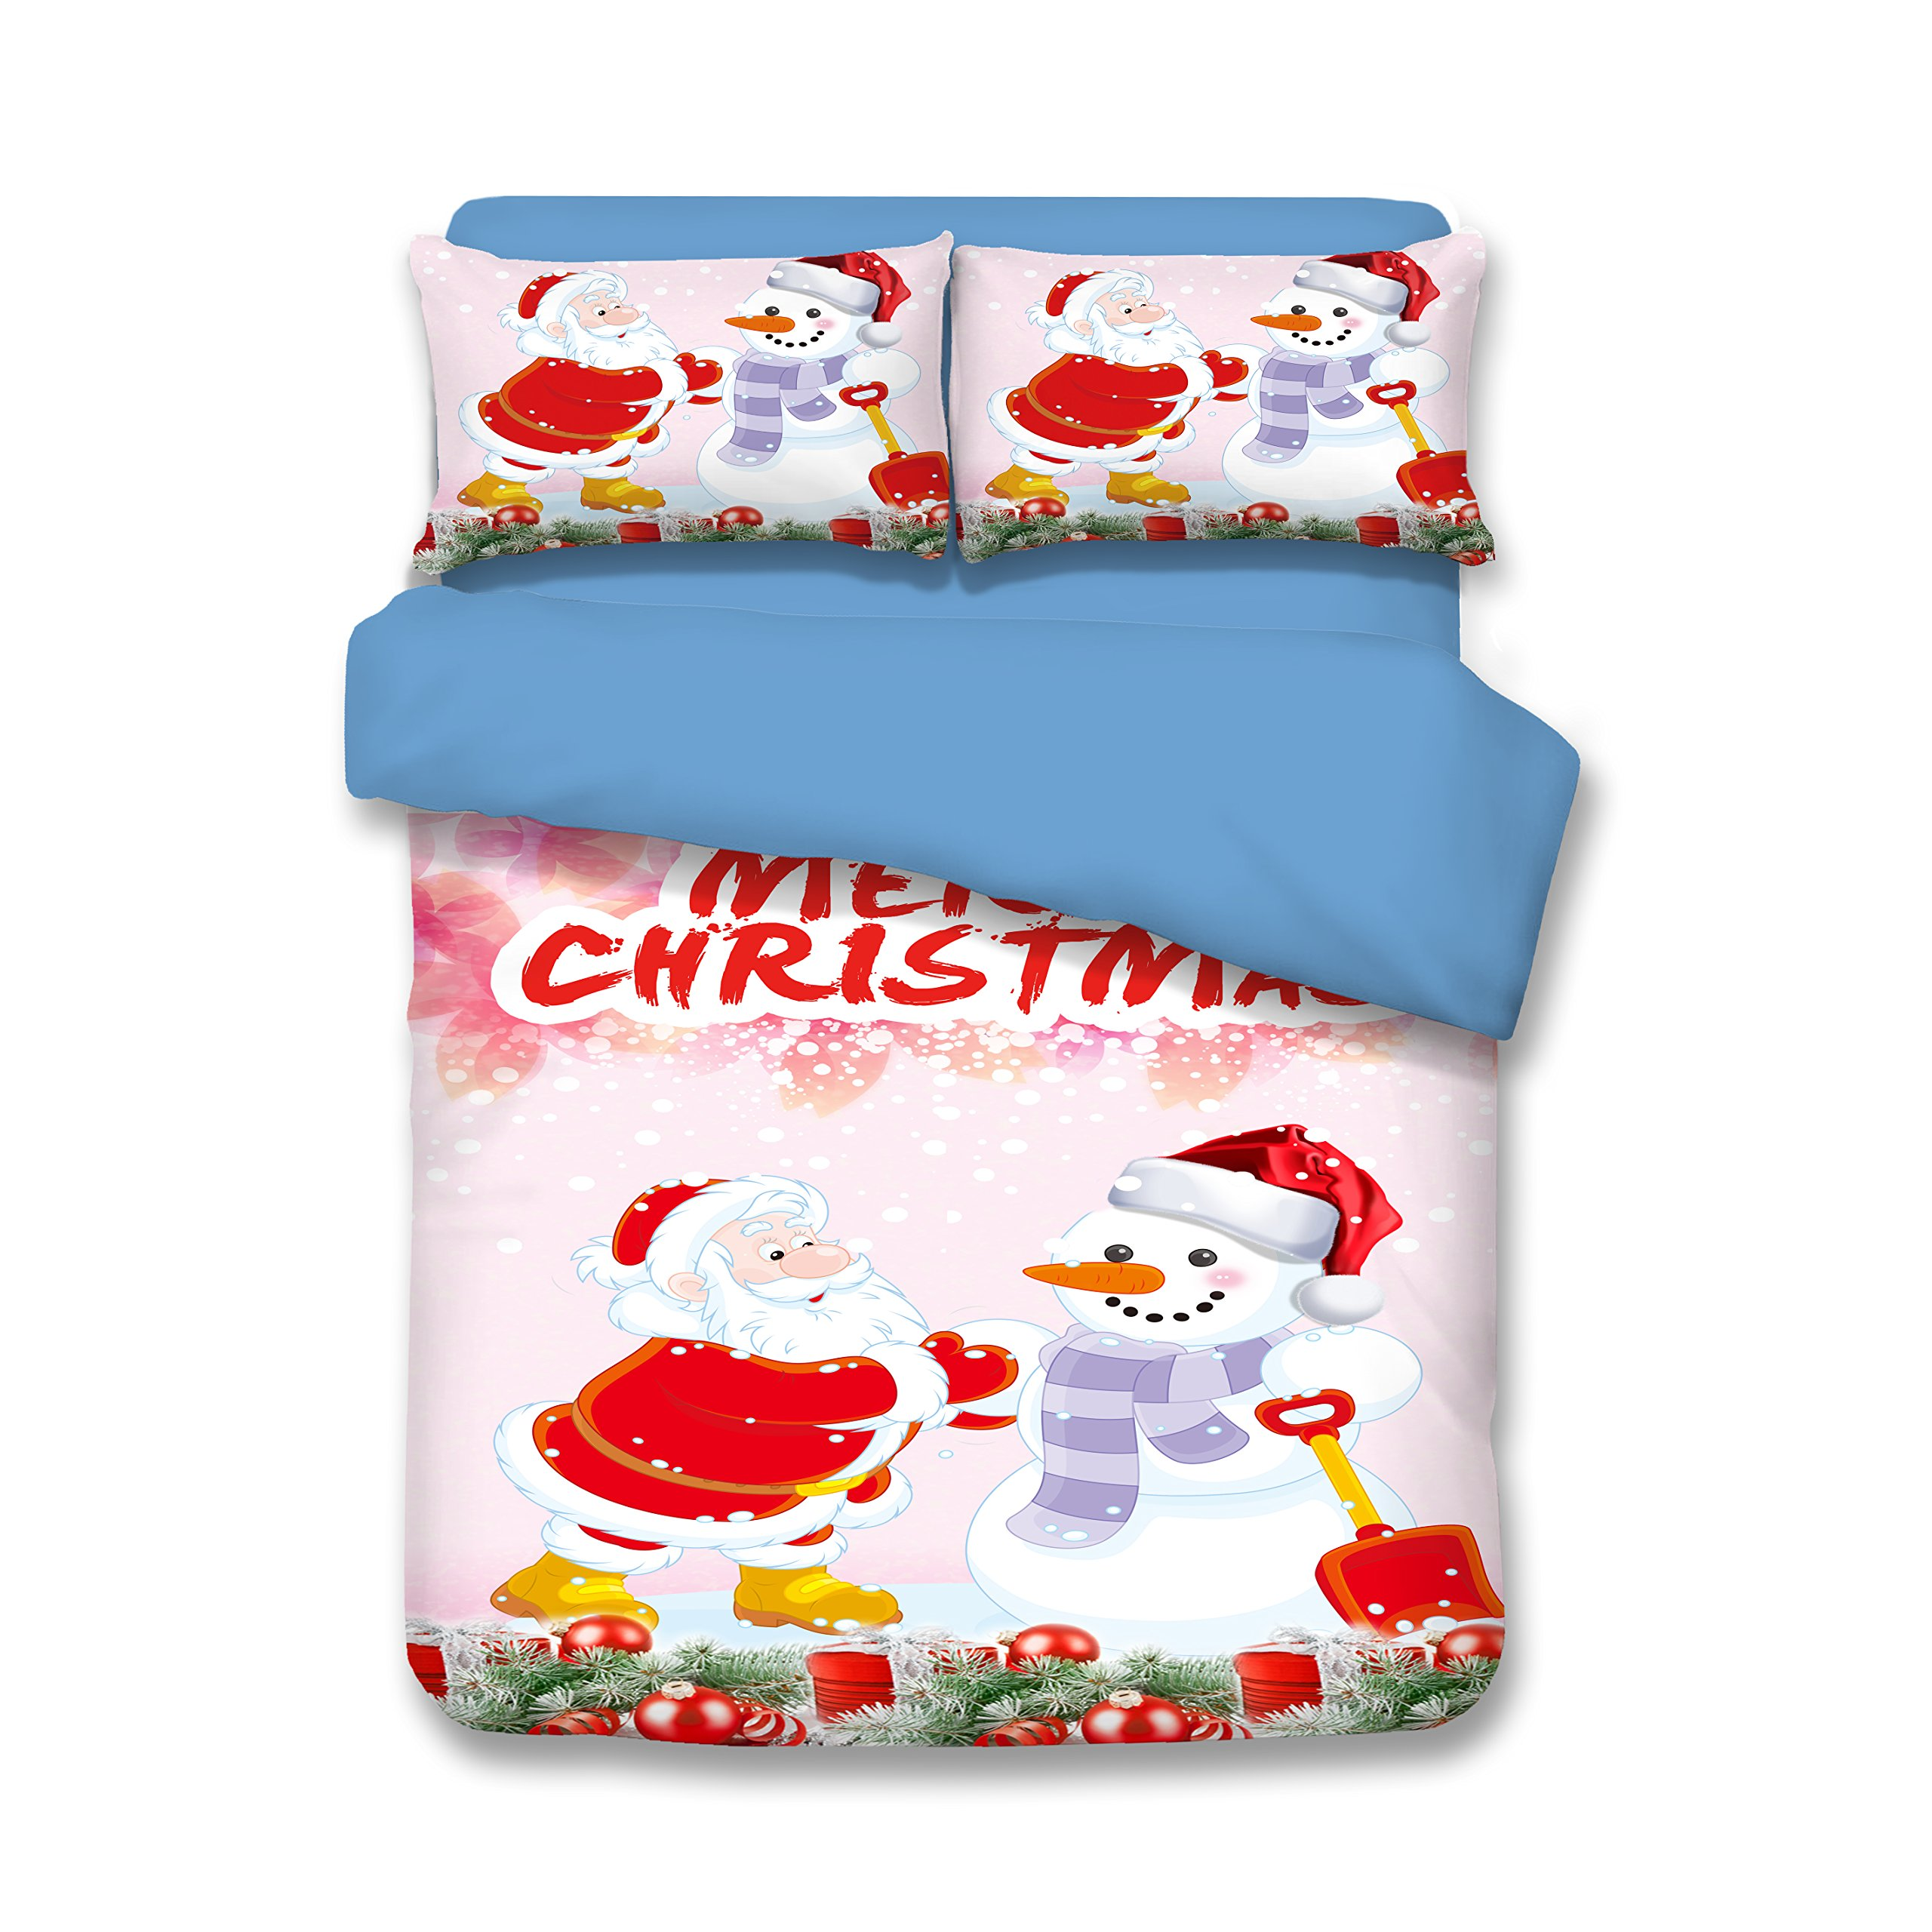 Christmas Snowman Bedding Sets - Polyester Reactive Printing Festival Gifts Home Decoration Twin Flat Sheet 10 Patterns